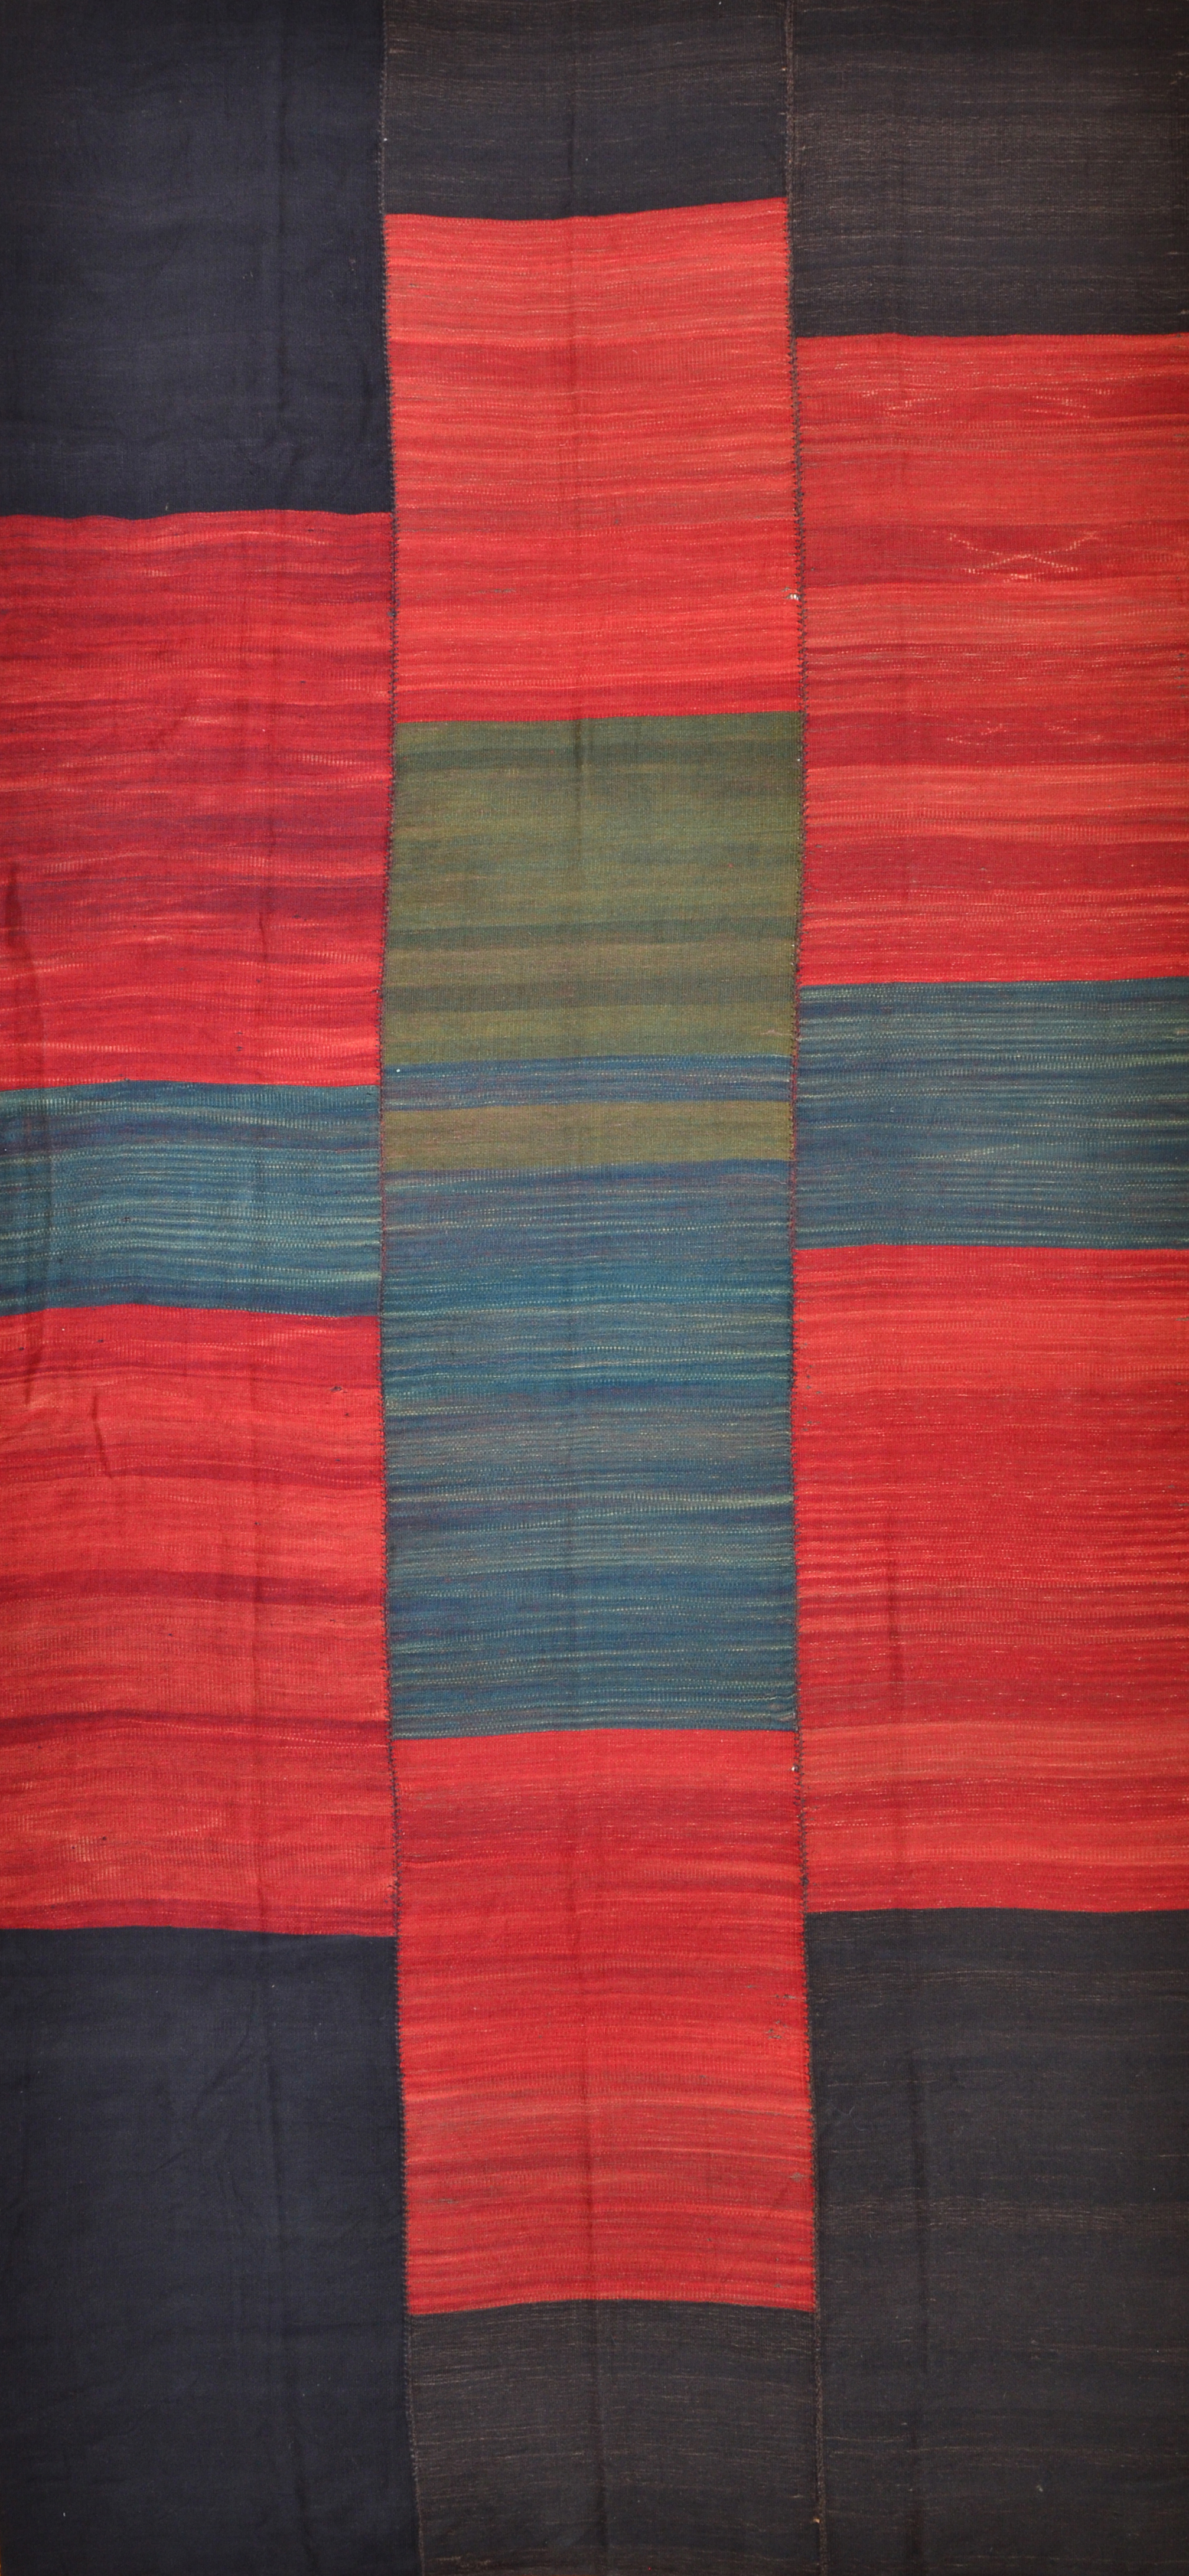 Bare Berlin Antique Rugs Amp Textile Exhibition 31 May 2